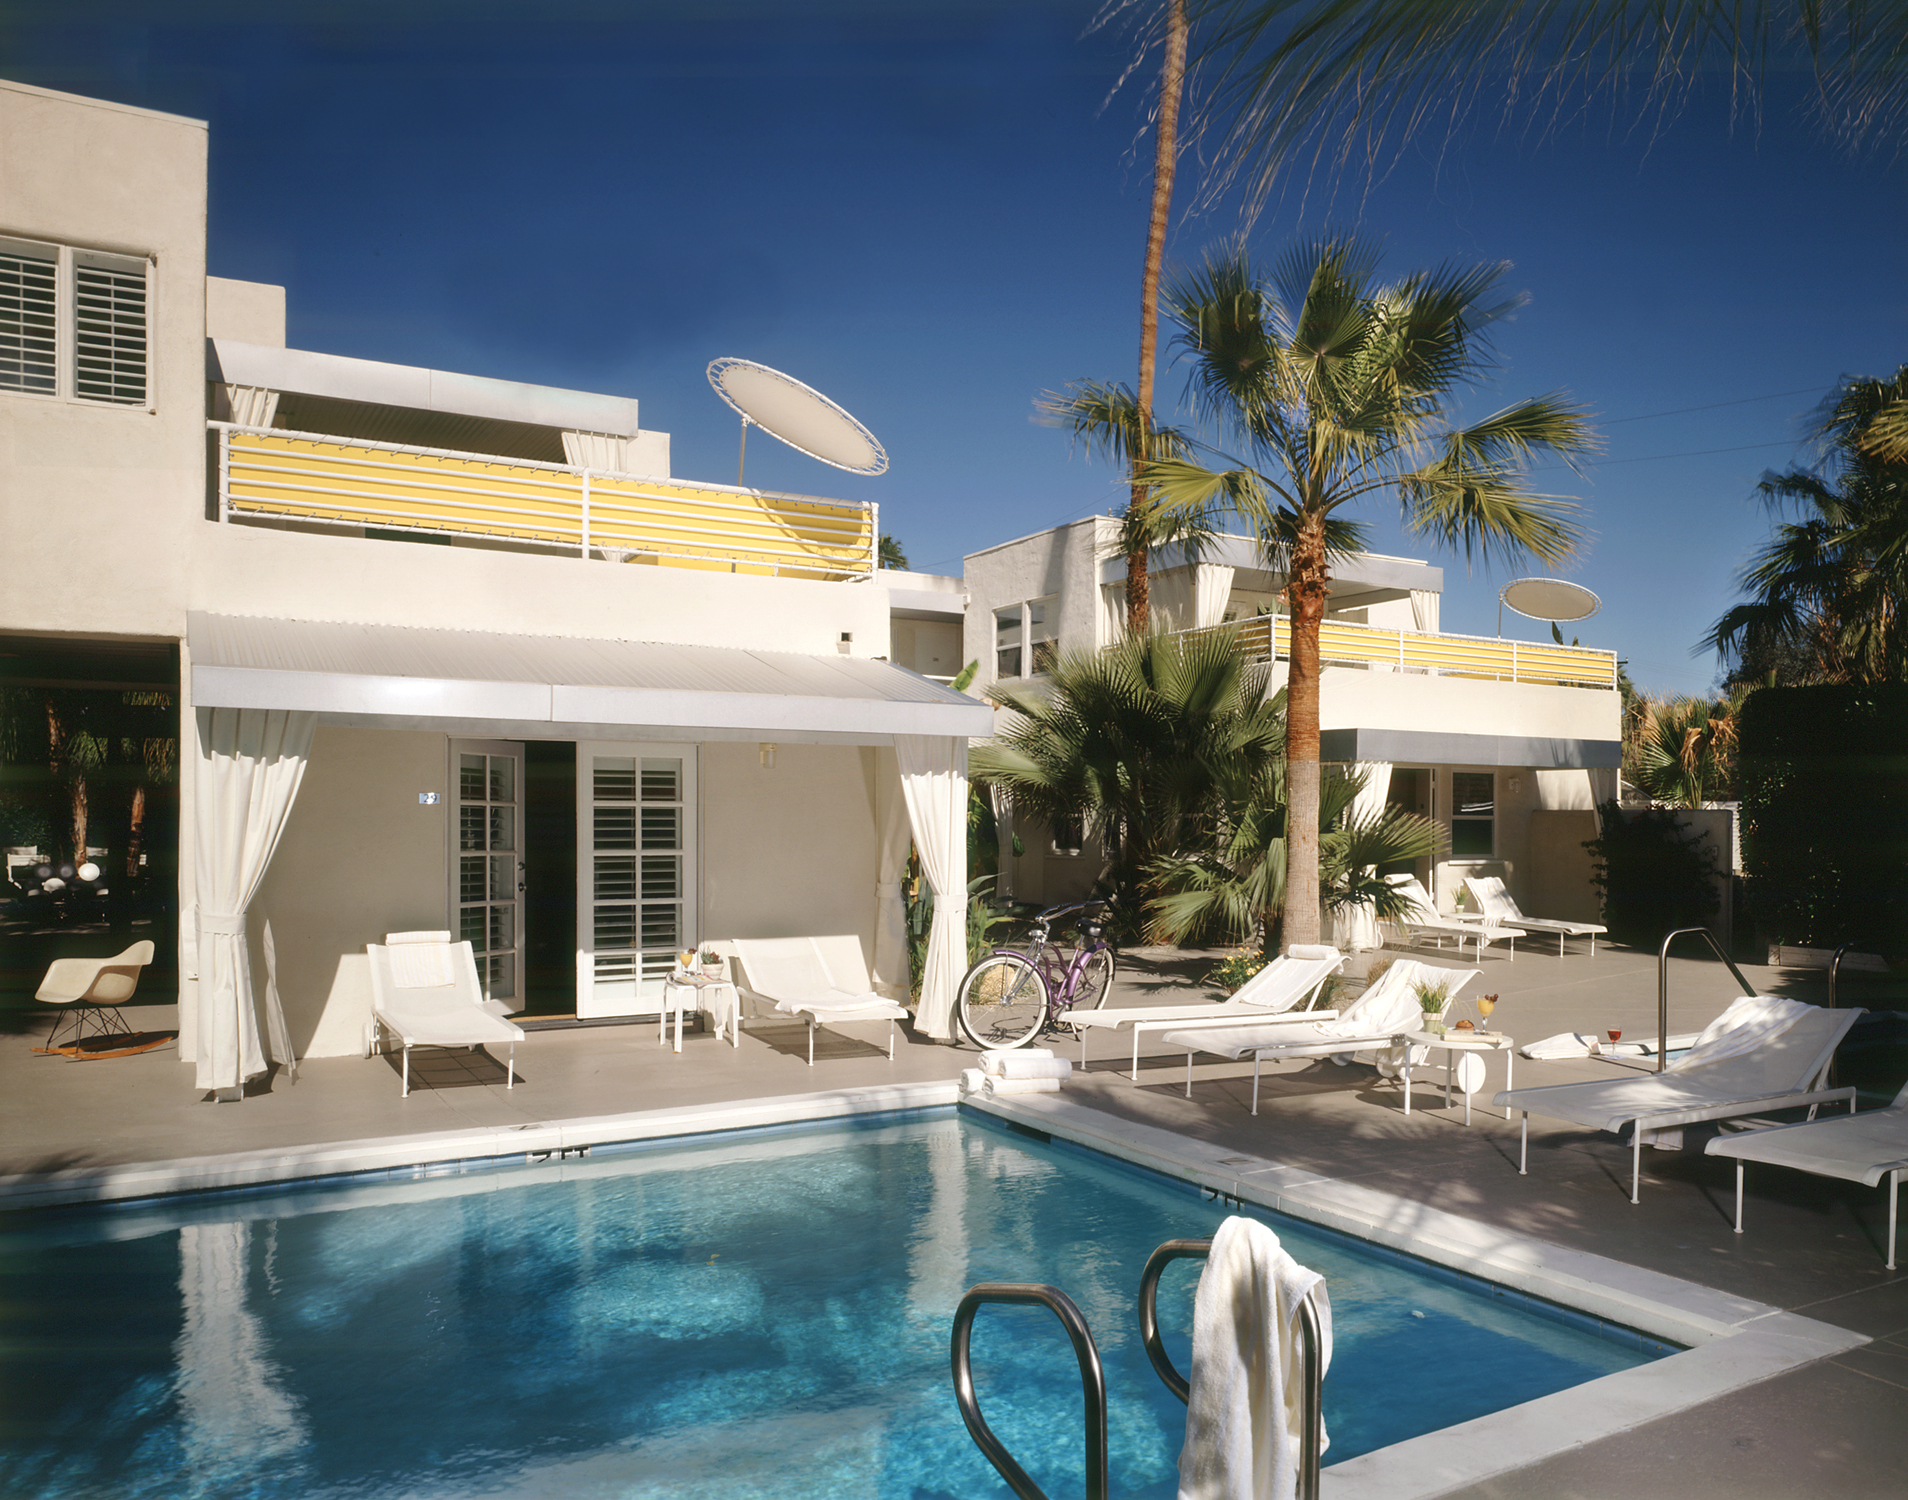 pic blog post us ca palm springs movie colony hotel 3 10 Being 31 weeks pregnant — The